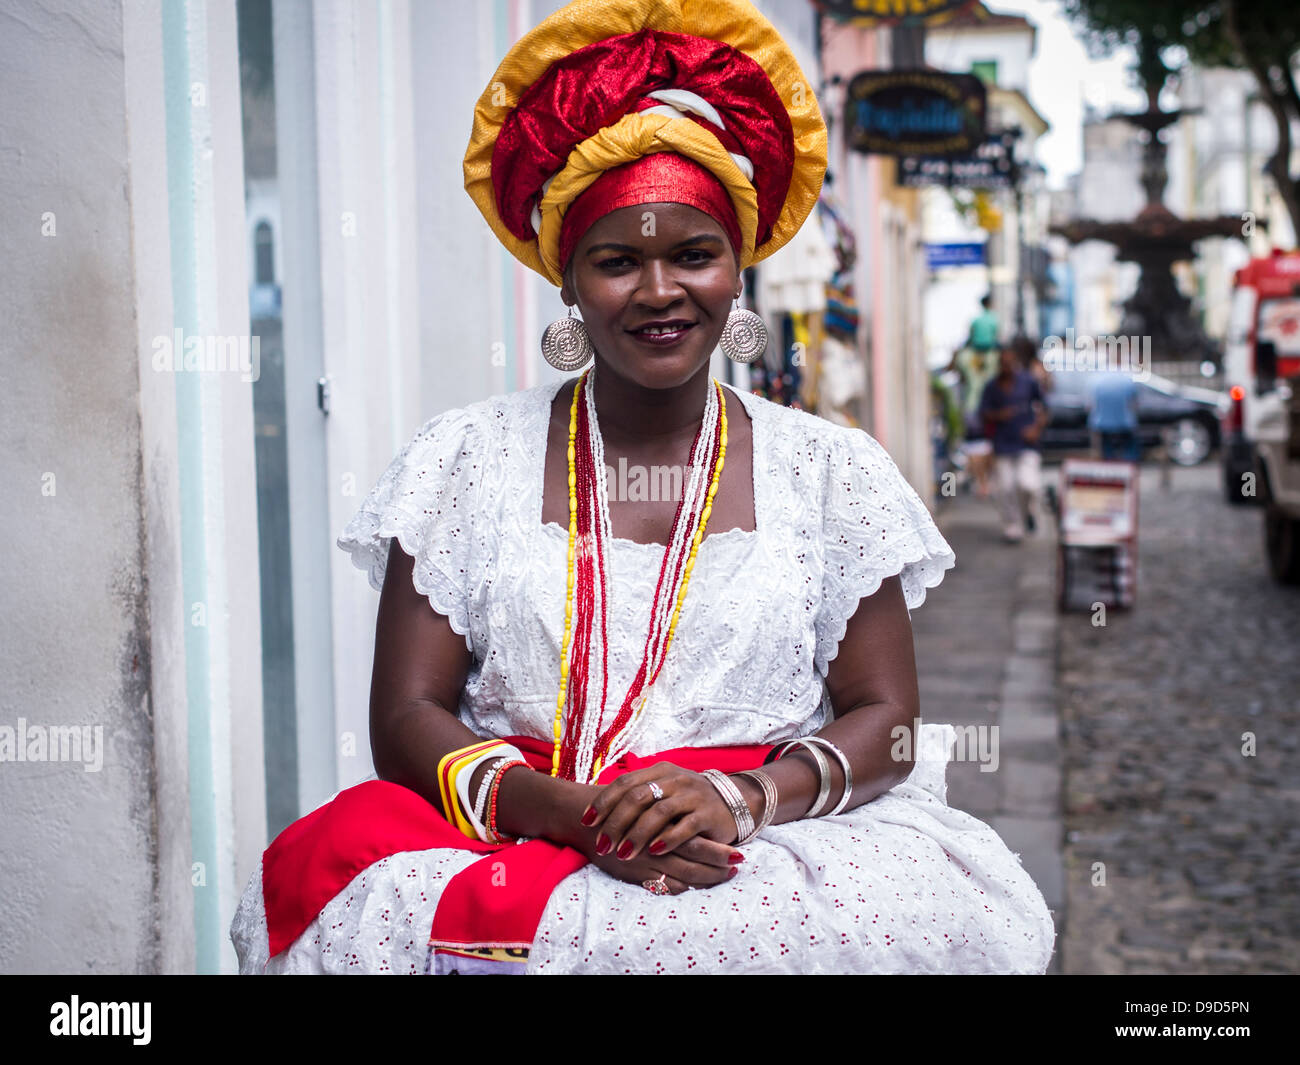 Woman wearing traditional clothes from the Bahia region of ...